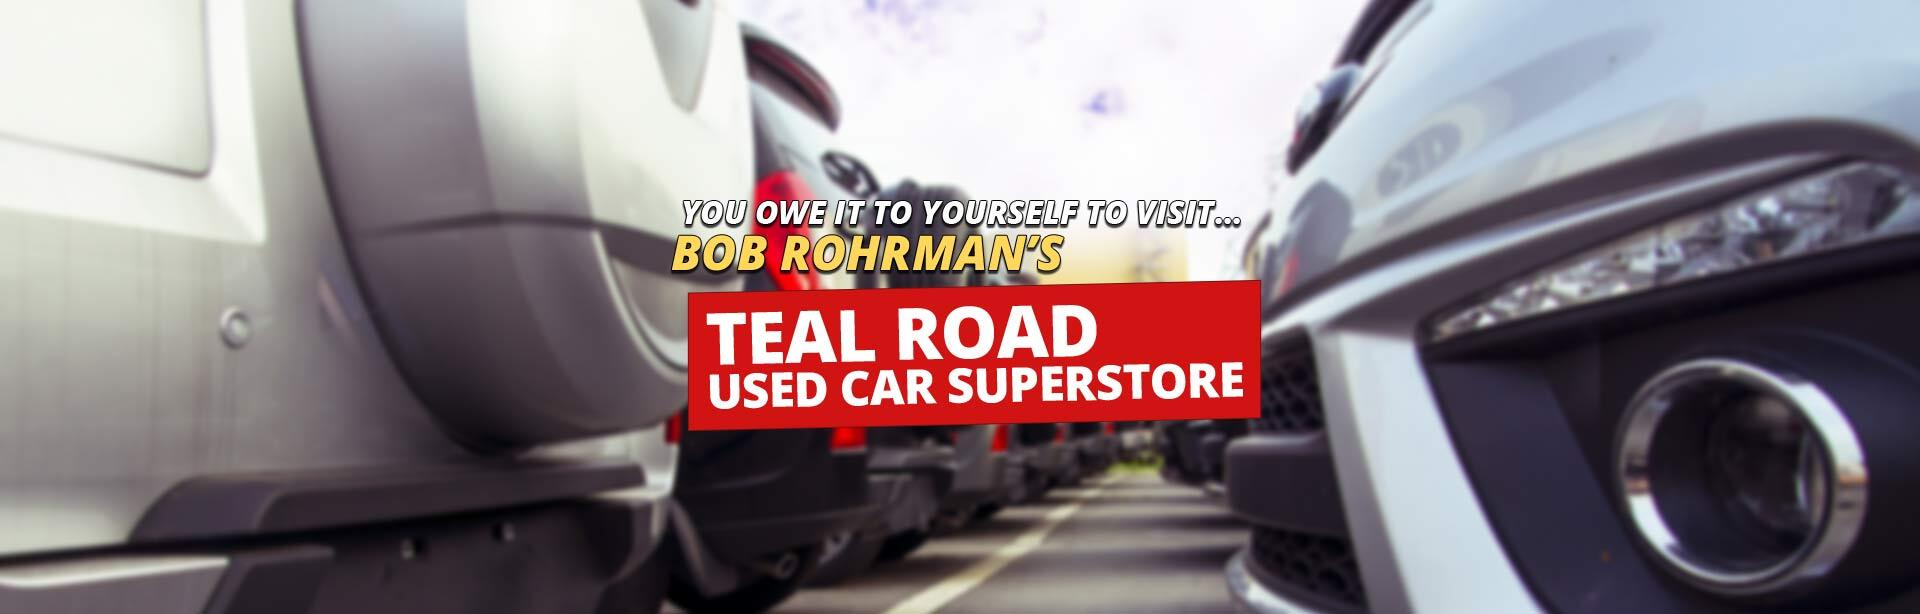 Teal Road Used Car Superstore